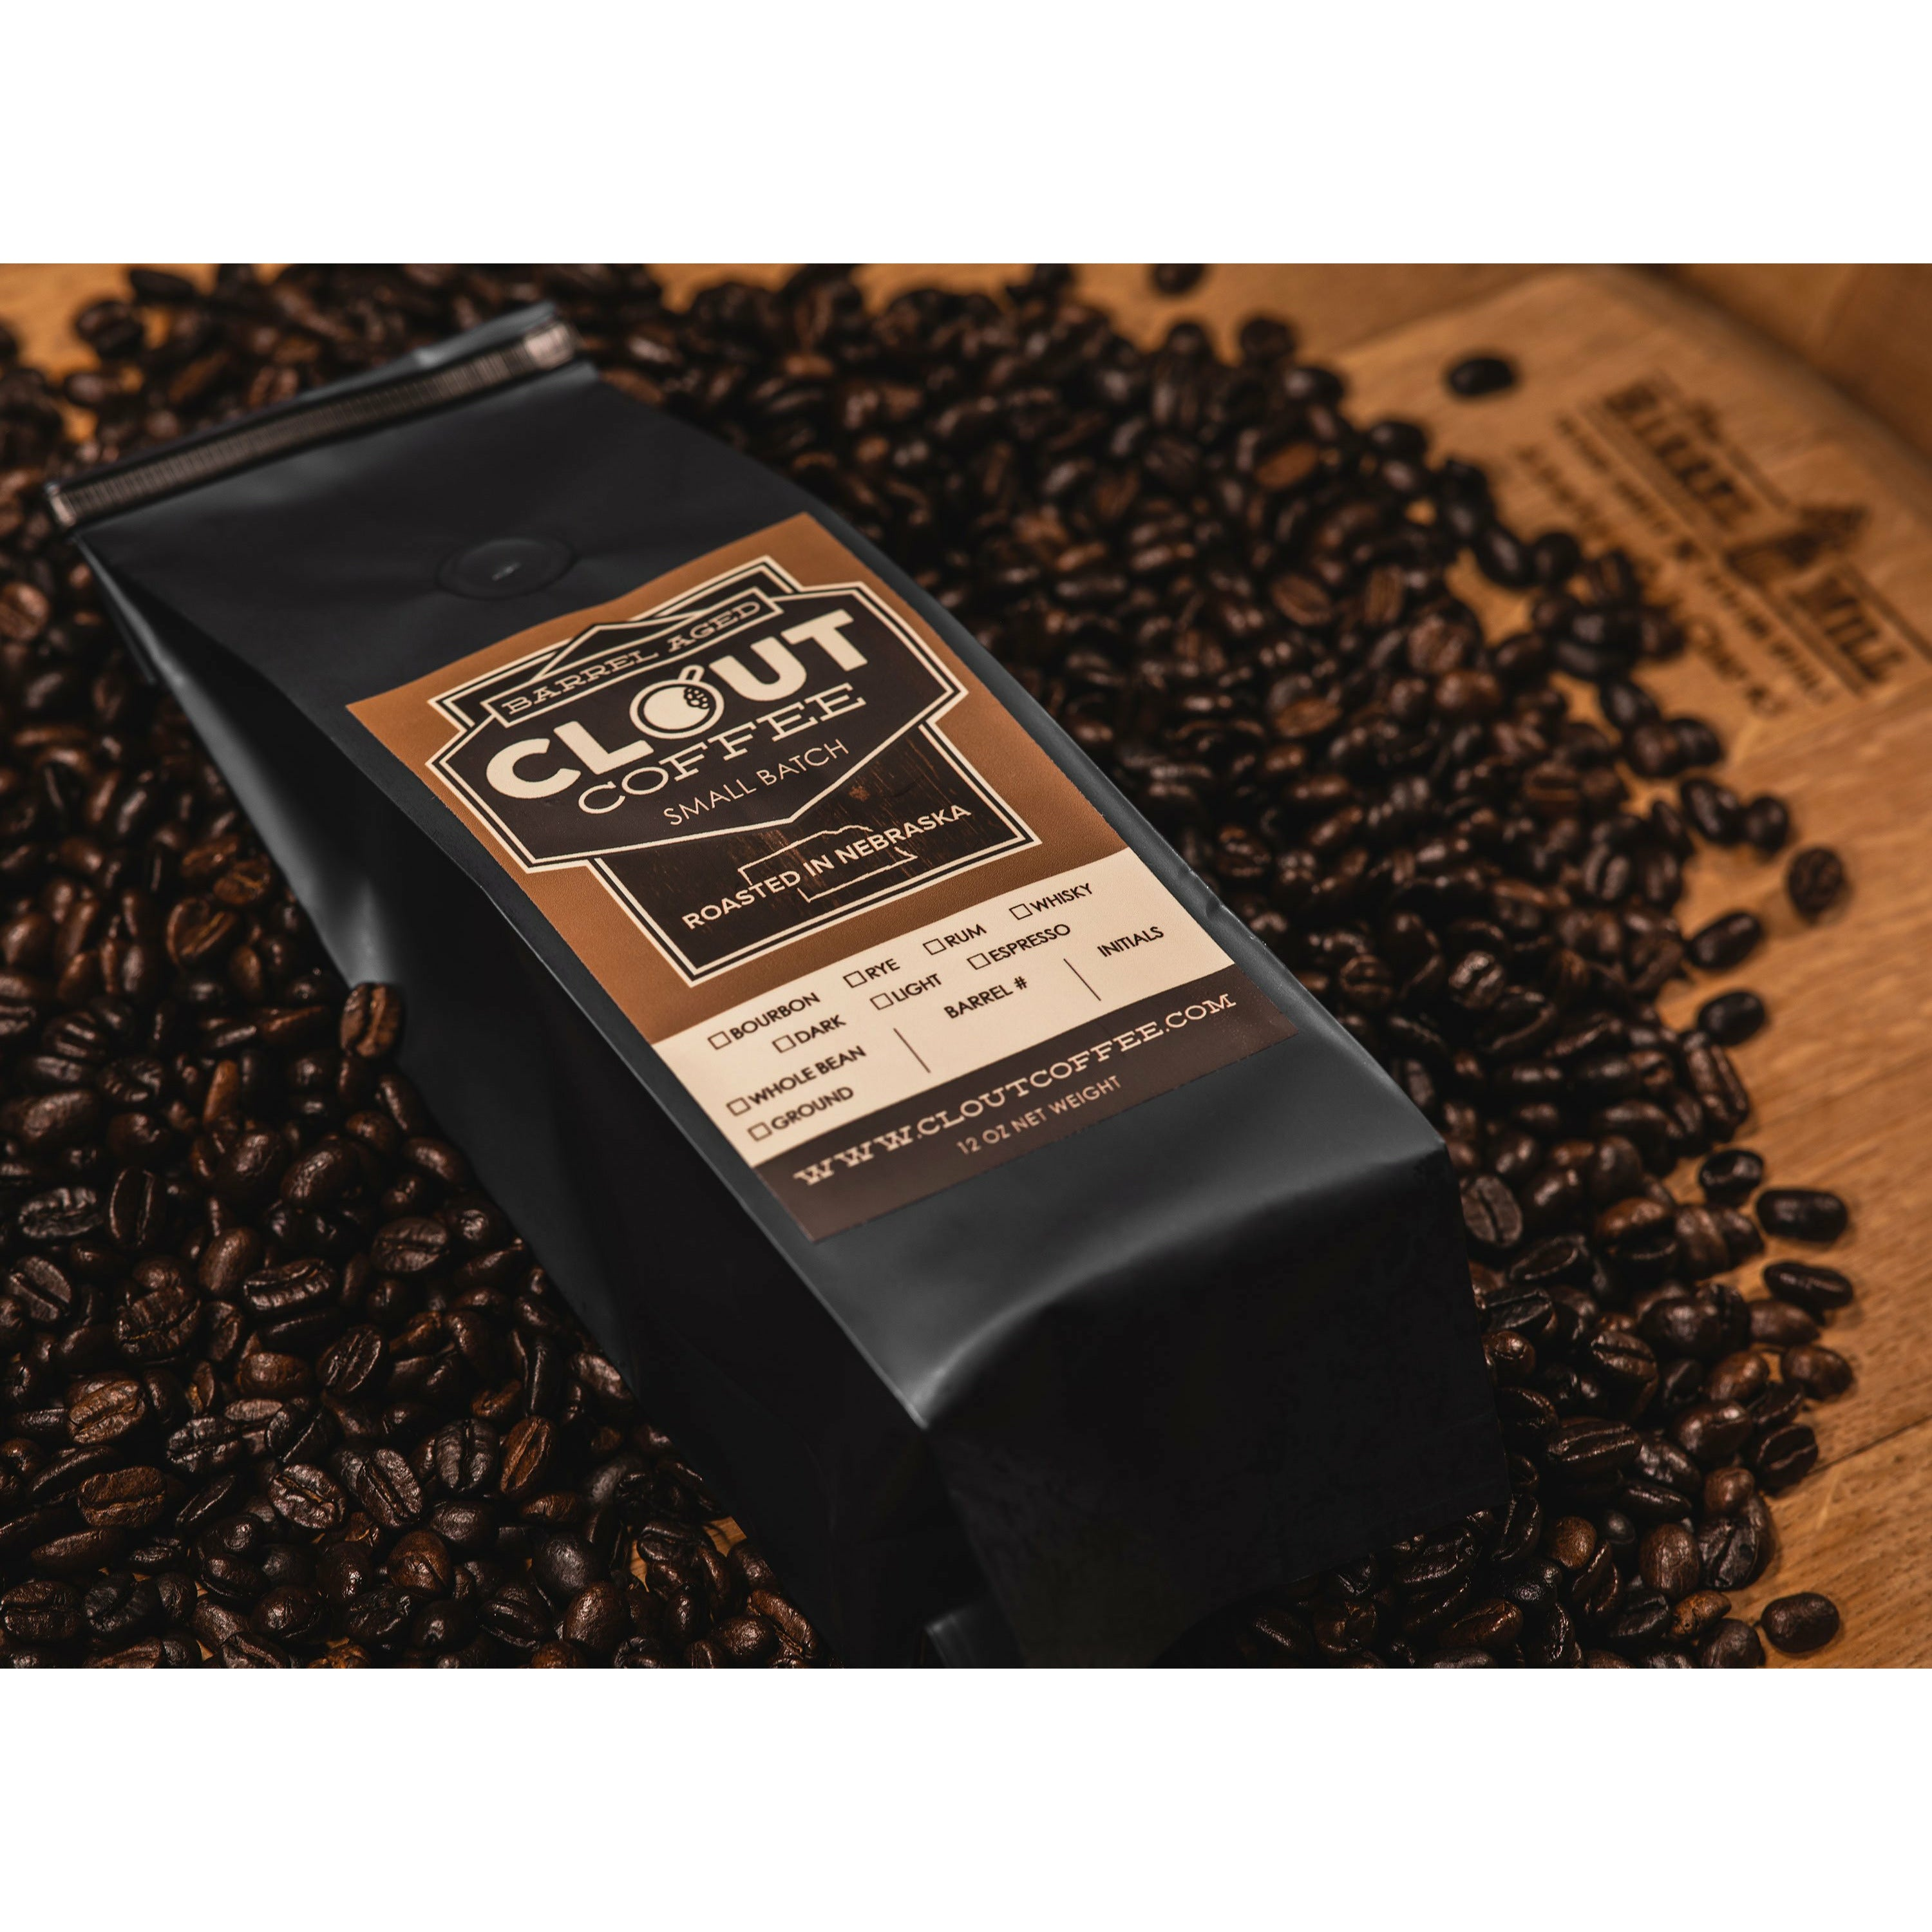 Clout Crate, Bourbon Barrel Aged Coffee Gift Box, 12 Ounce Light Roast Ground Coffee, 13 Ounce Navy Ceramic Campfire Coffee Mug with Clout Coffee Logo